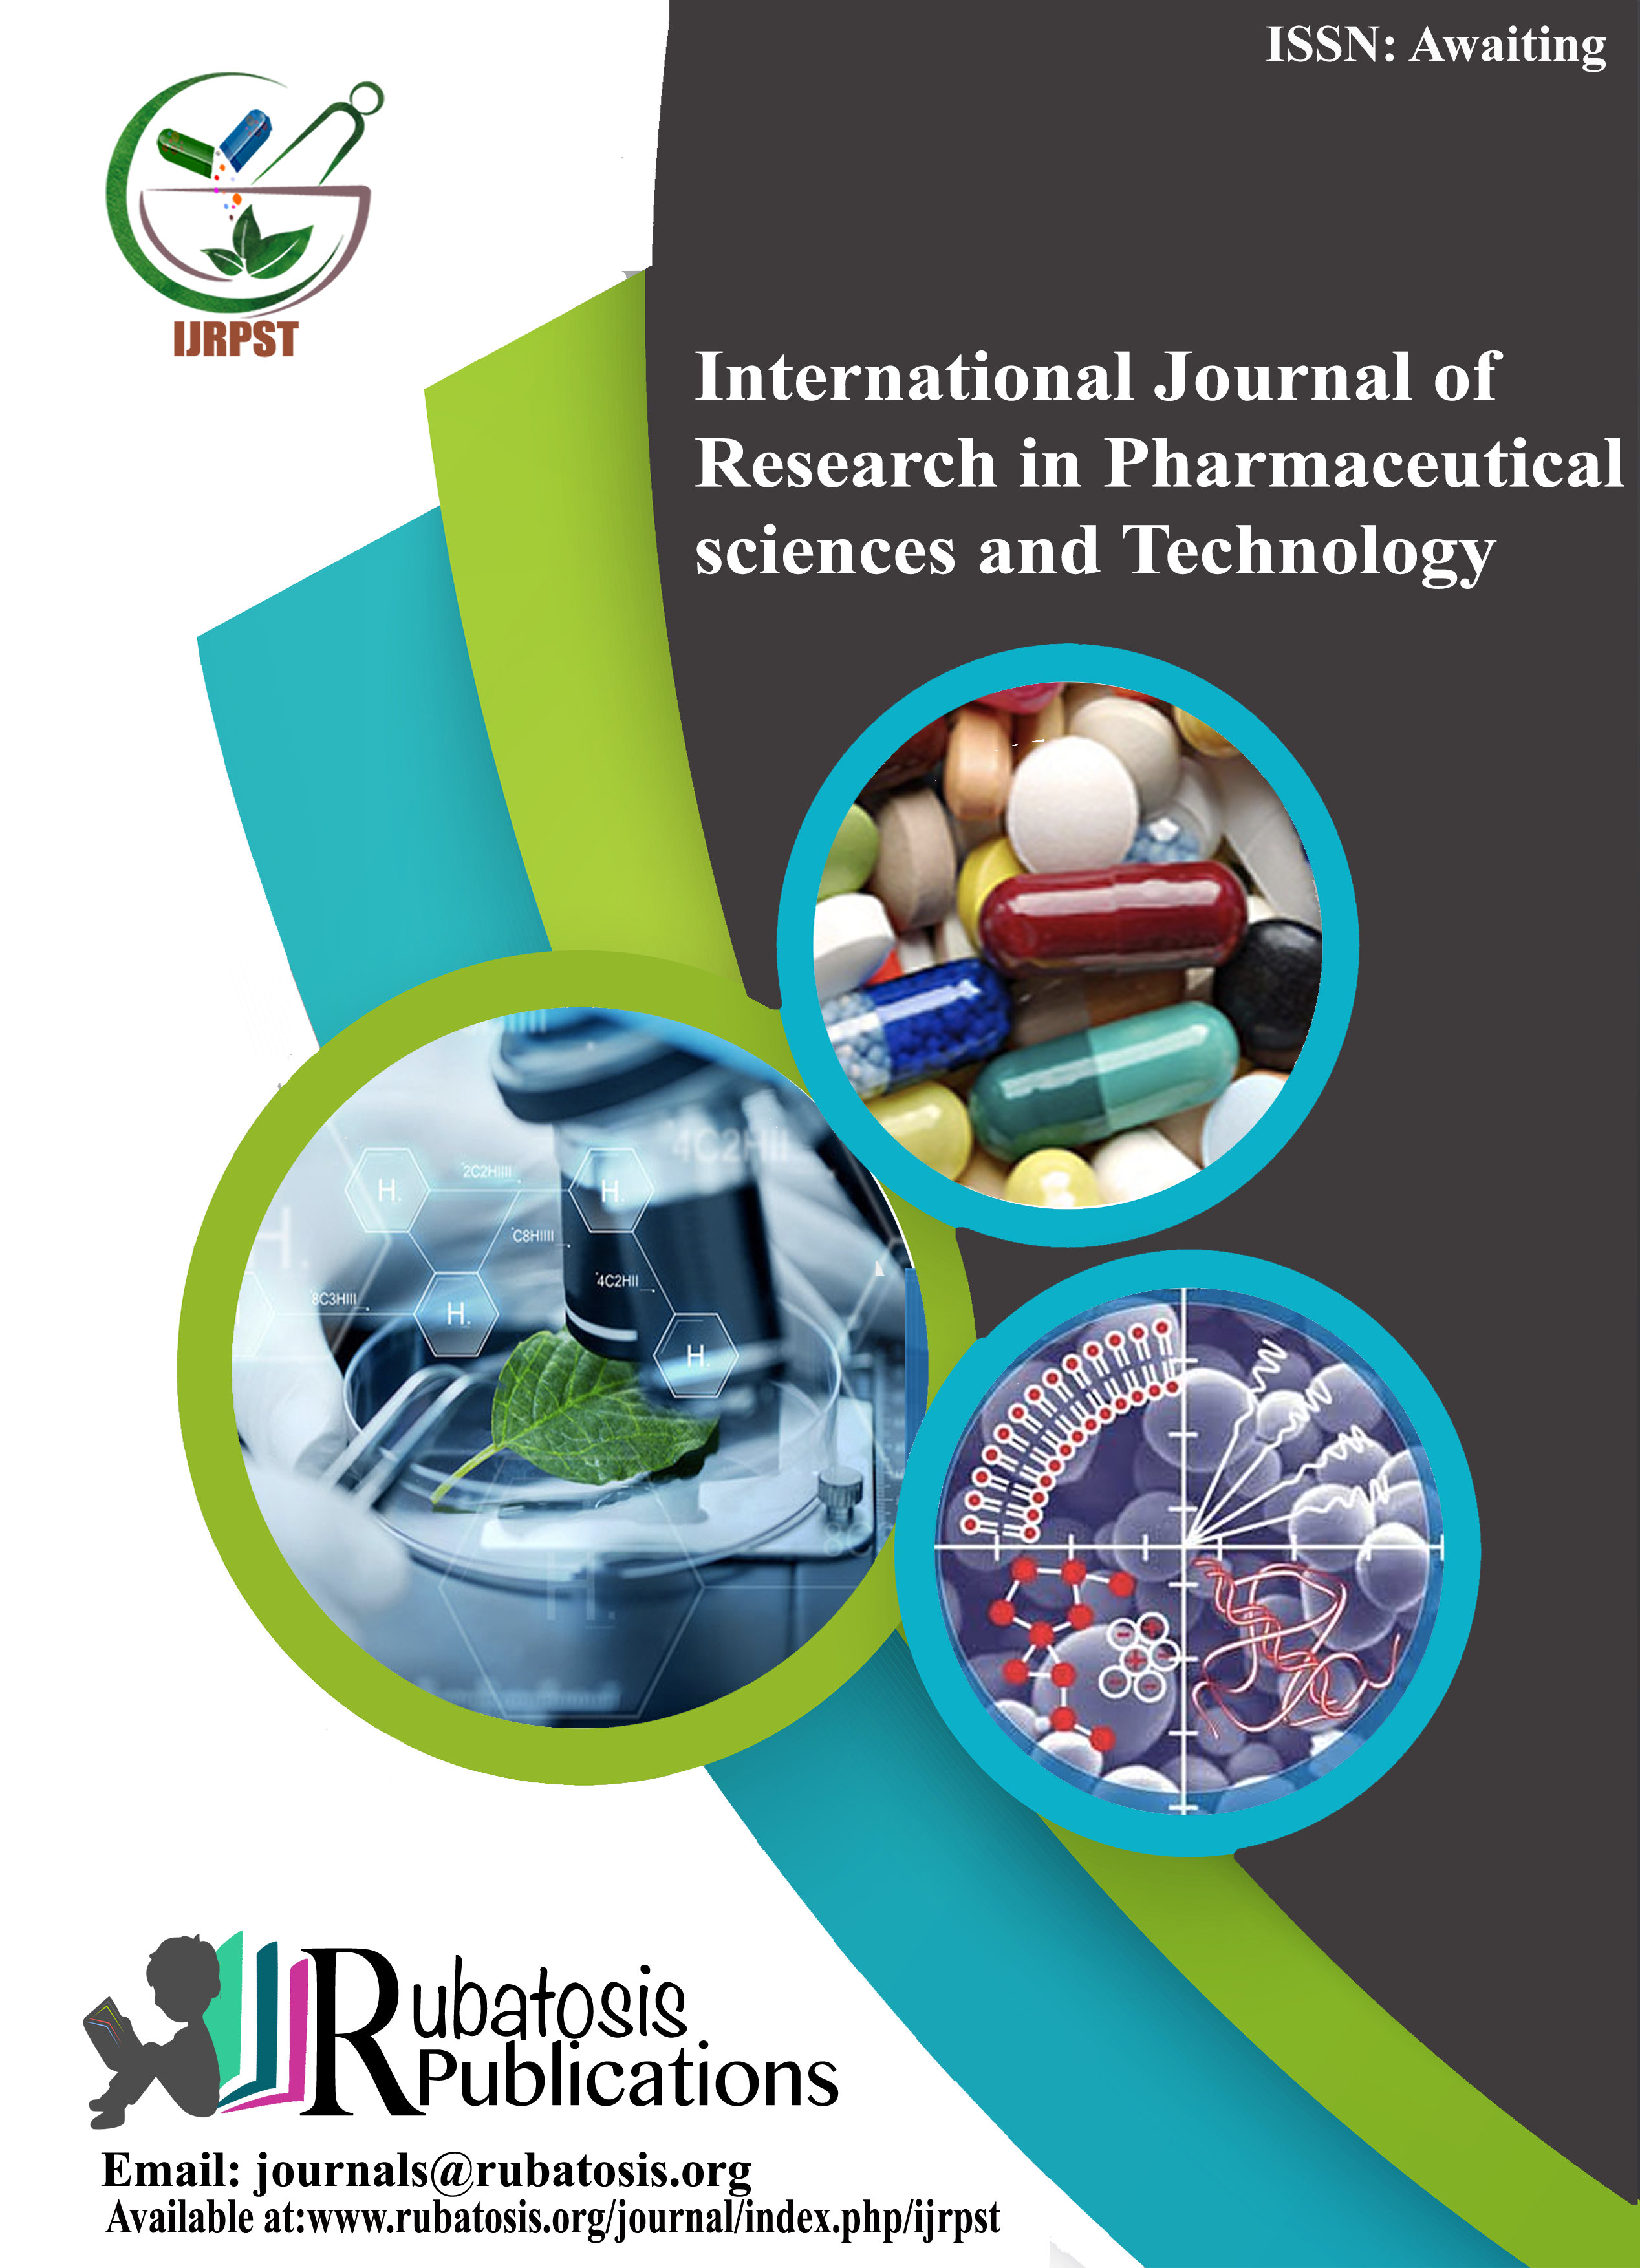 International Journal of Research in Pharmaceutical Sciences and Technology